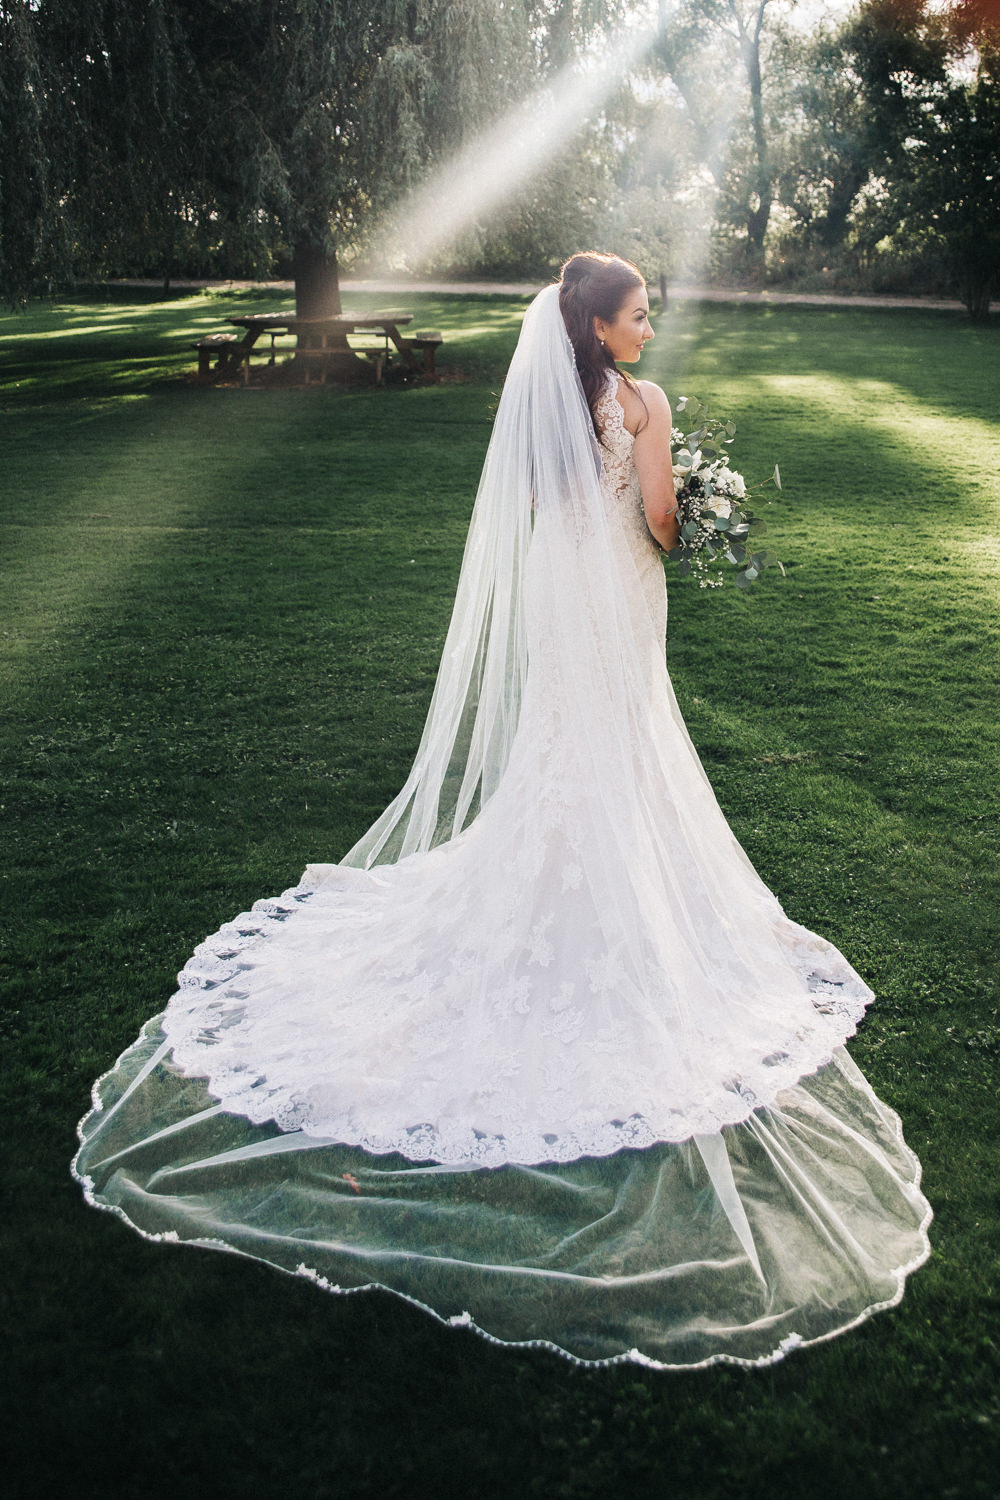 Lace Dress Train Fit Flare Button Bride Bridal Gown Veil Wray's Barn Whinstone View Wedding Sally T Photography